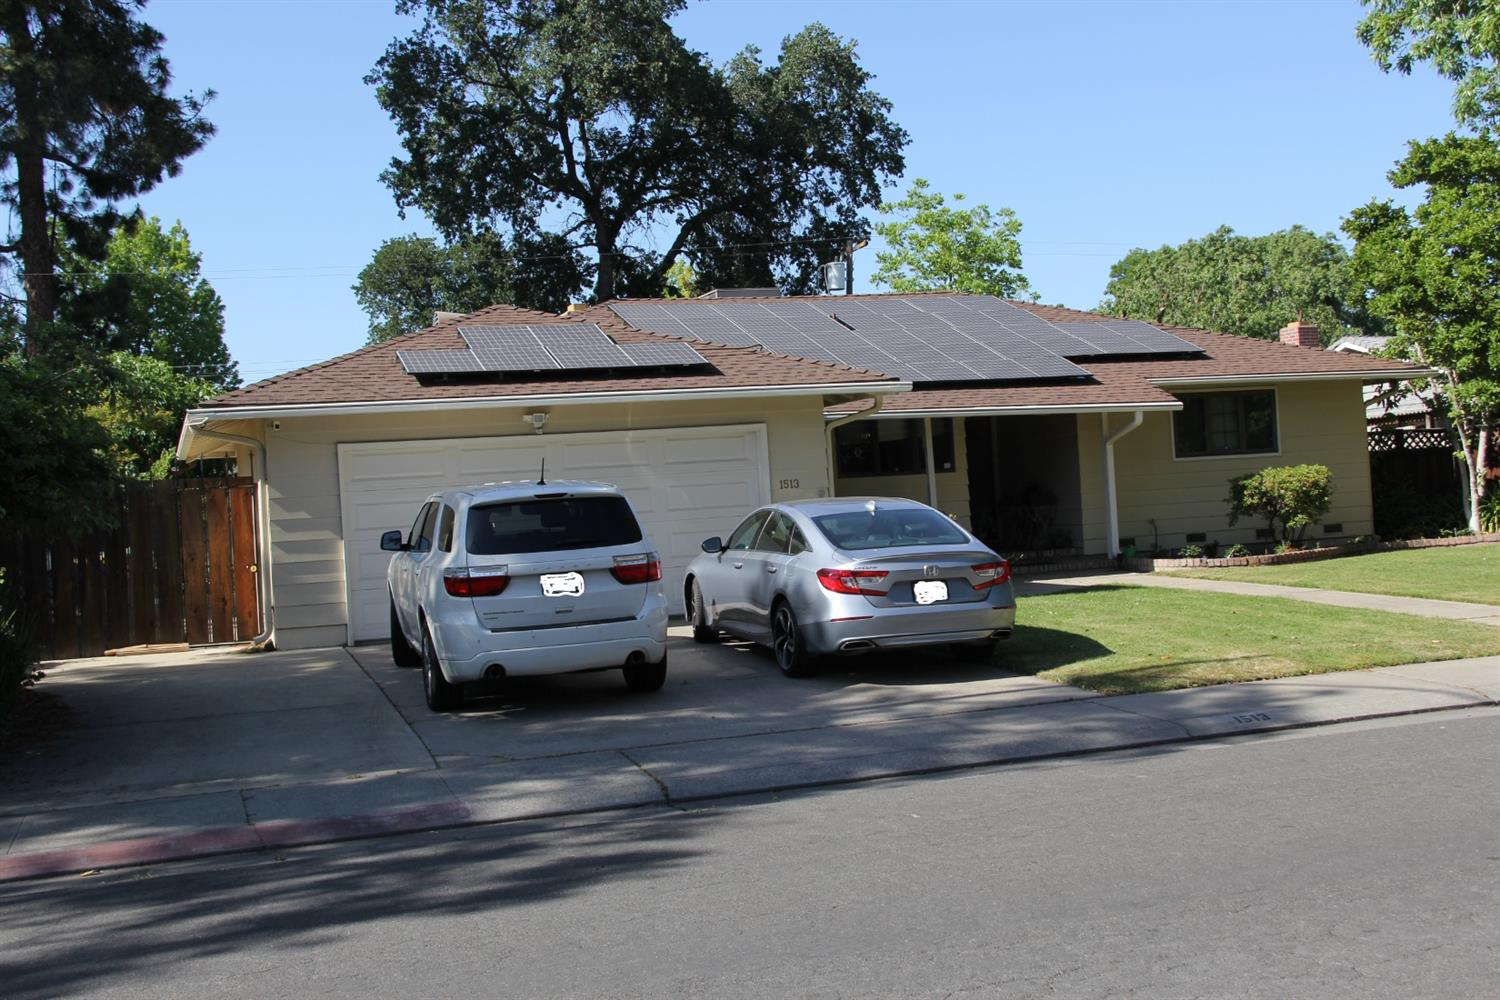 Photo of 1513 Mcclellan Way, Stockton, CA 95207